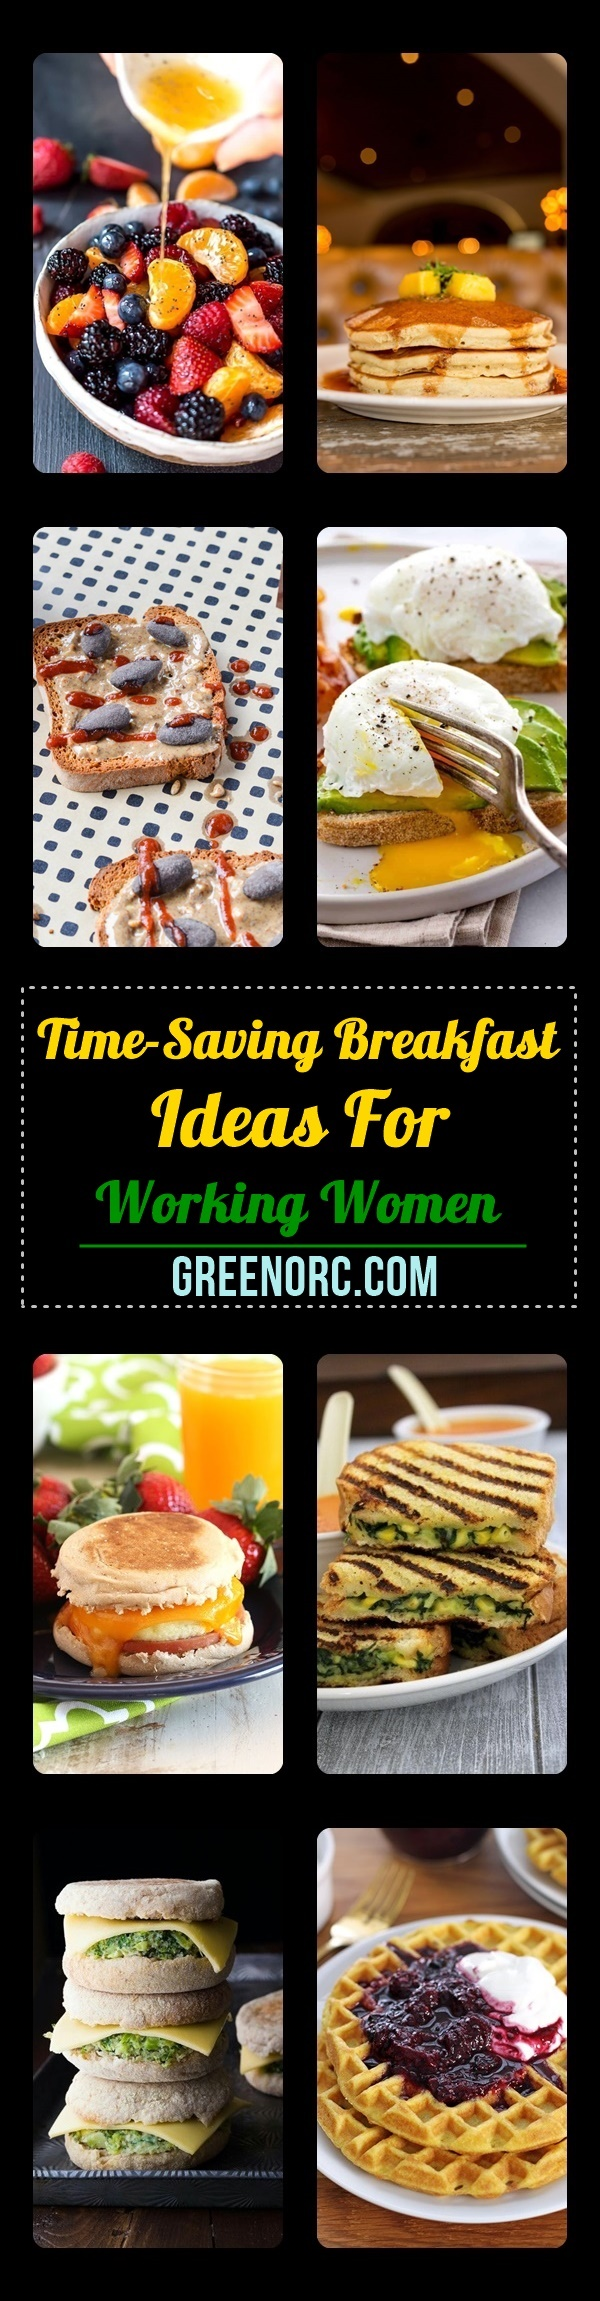 Time-Saving Breakfast Ideas For Working Women